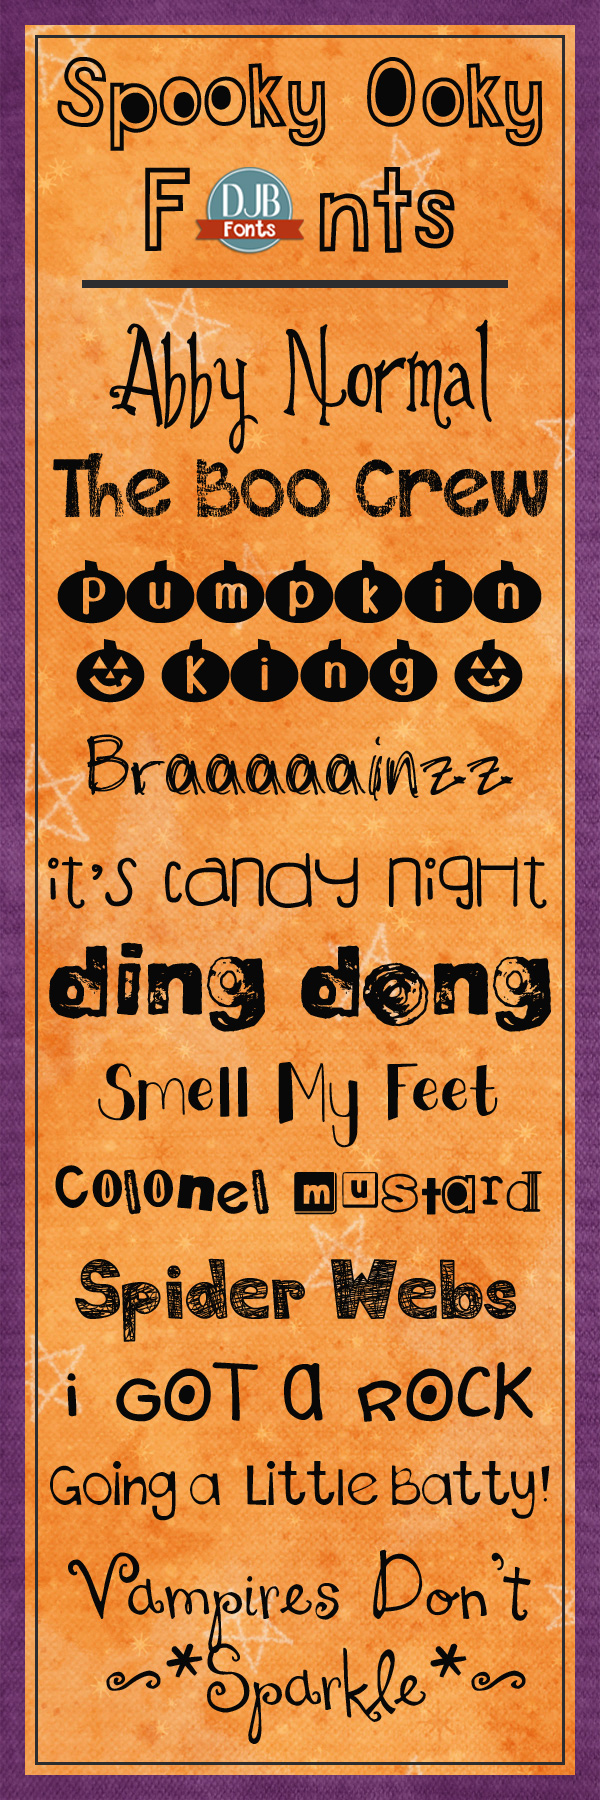 Spooky Ooky Fonts -- Don't let these fonts scare you! They're actually free for personal use from DarcyBaldwin.com!